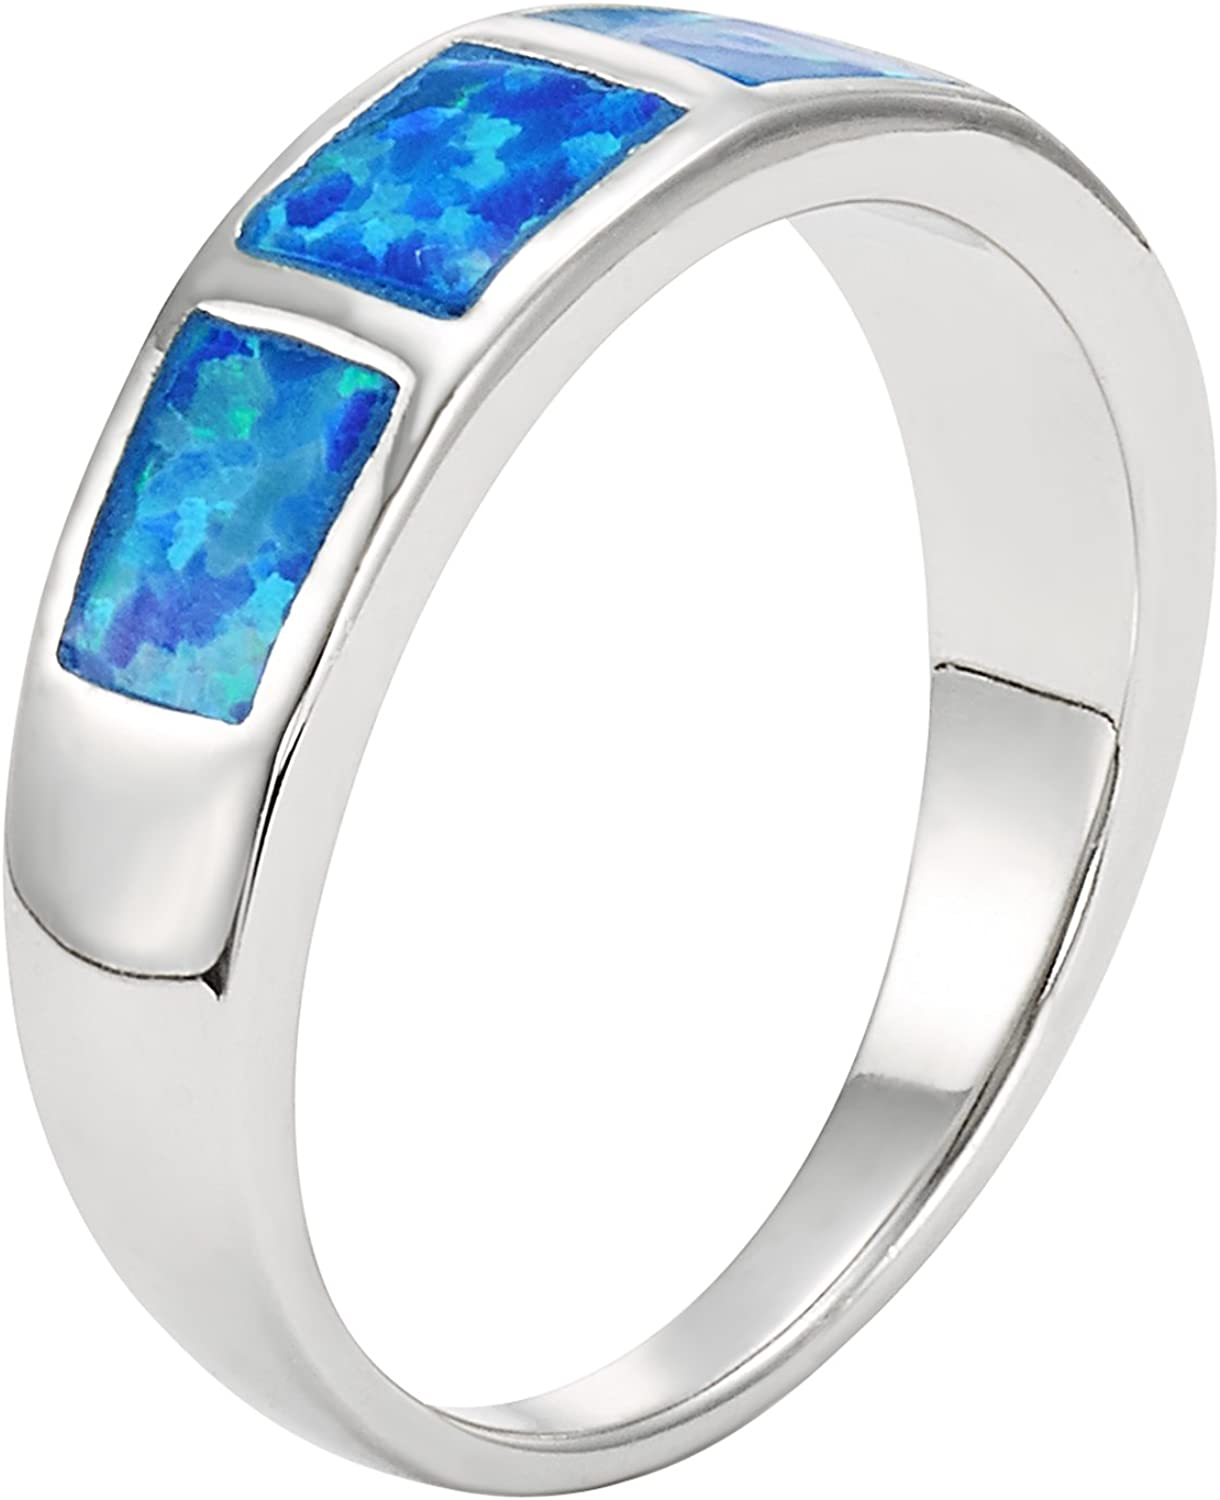 925 STERLING SILVER Blue lab FIRE OPAL Ring Rhodium #164 Details about  /Size 8